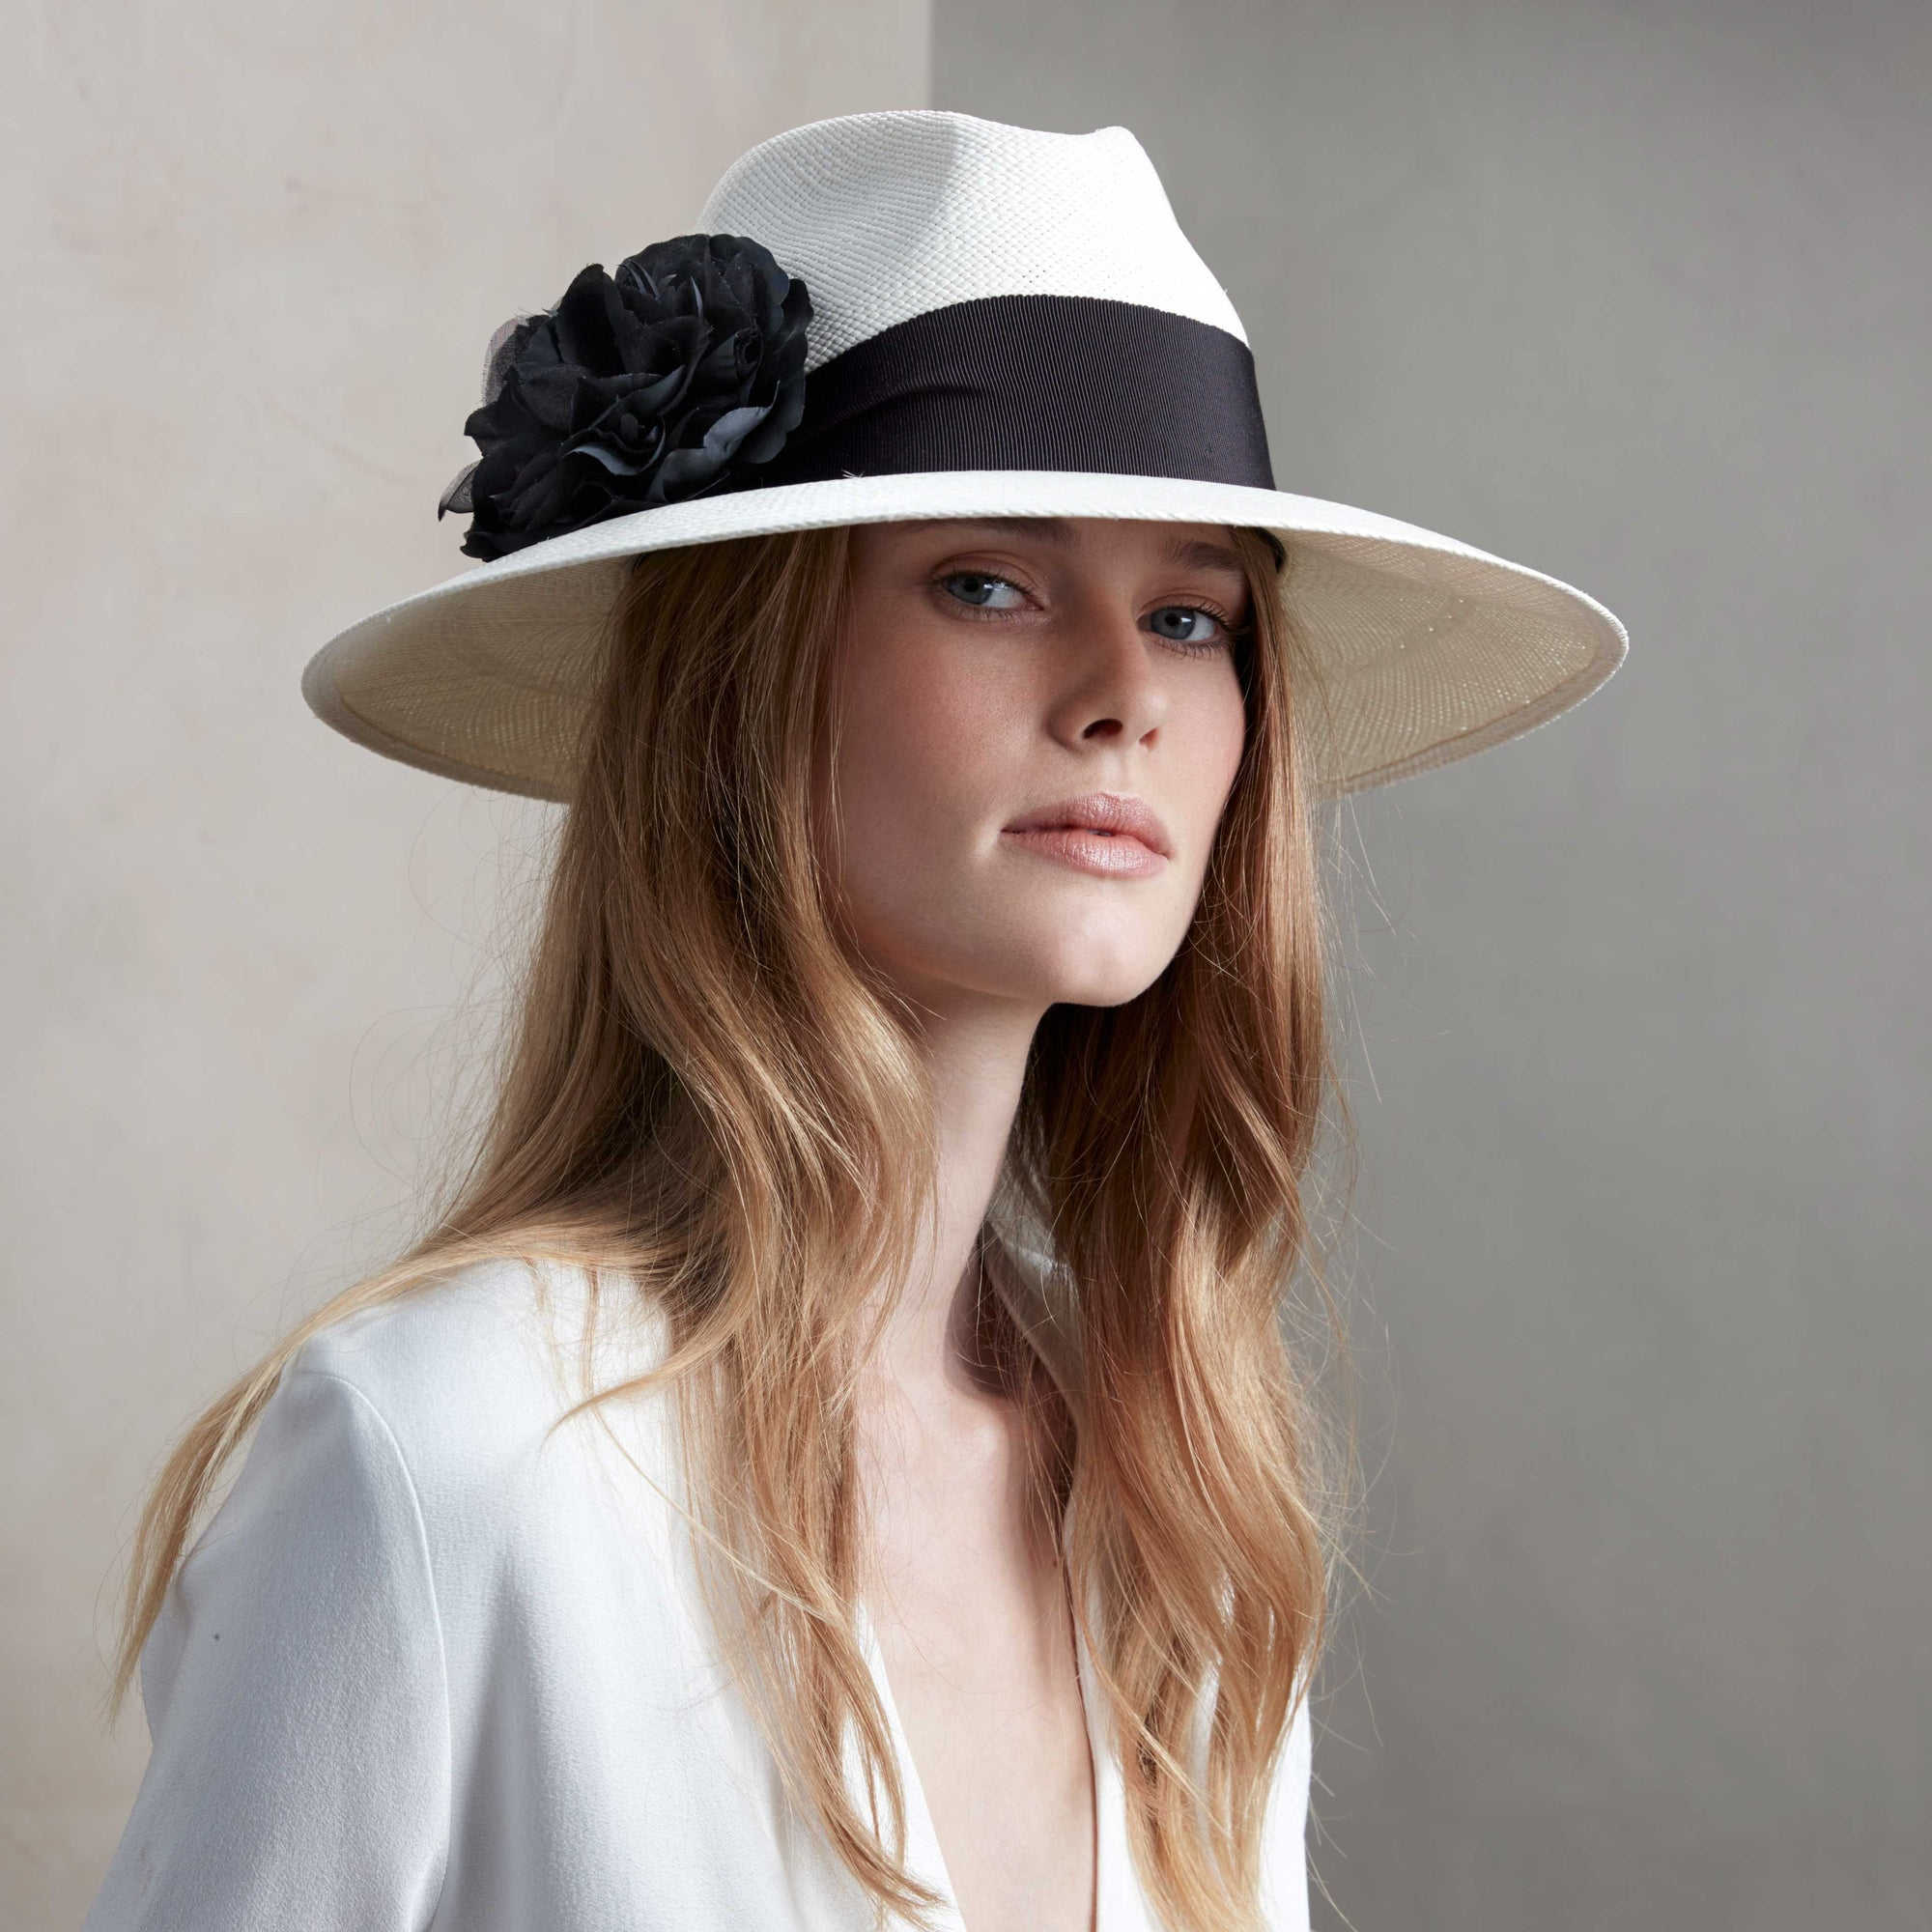 Luxor Panama hat - Panamas, Straw and Sun Hats for Women - Lock & Co. Hatters London UK